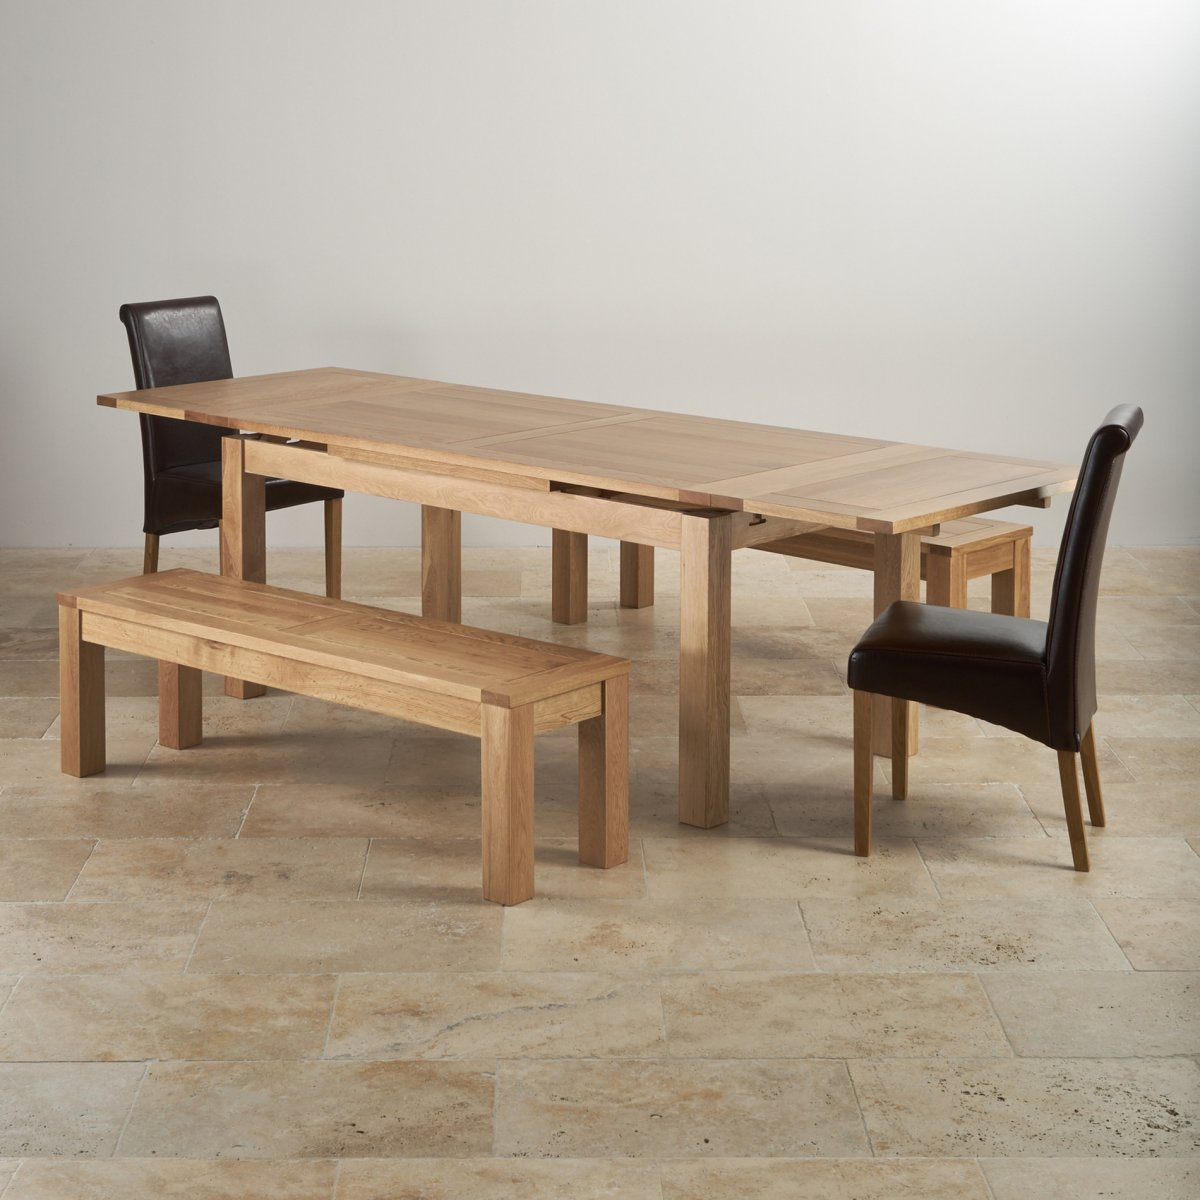 Dorset Dining Set In Oak: Dining Table + 2 Benches & 2 Chairs